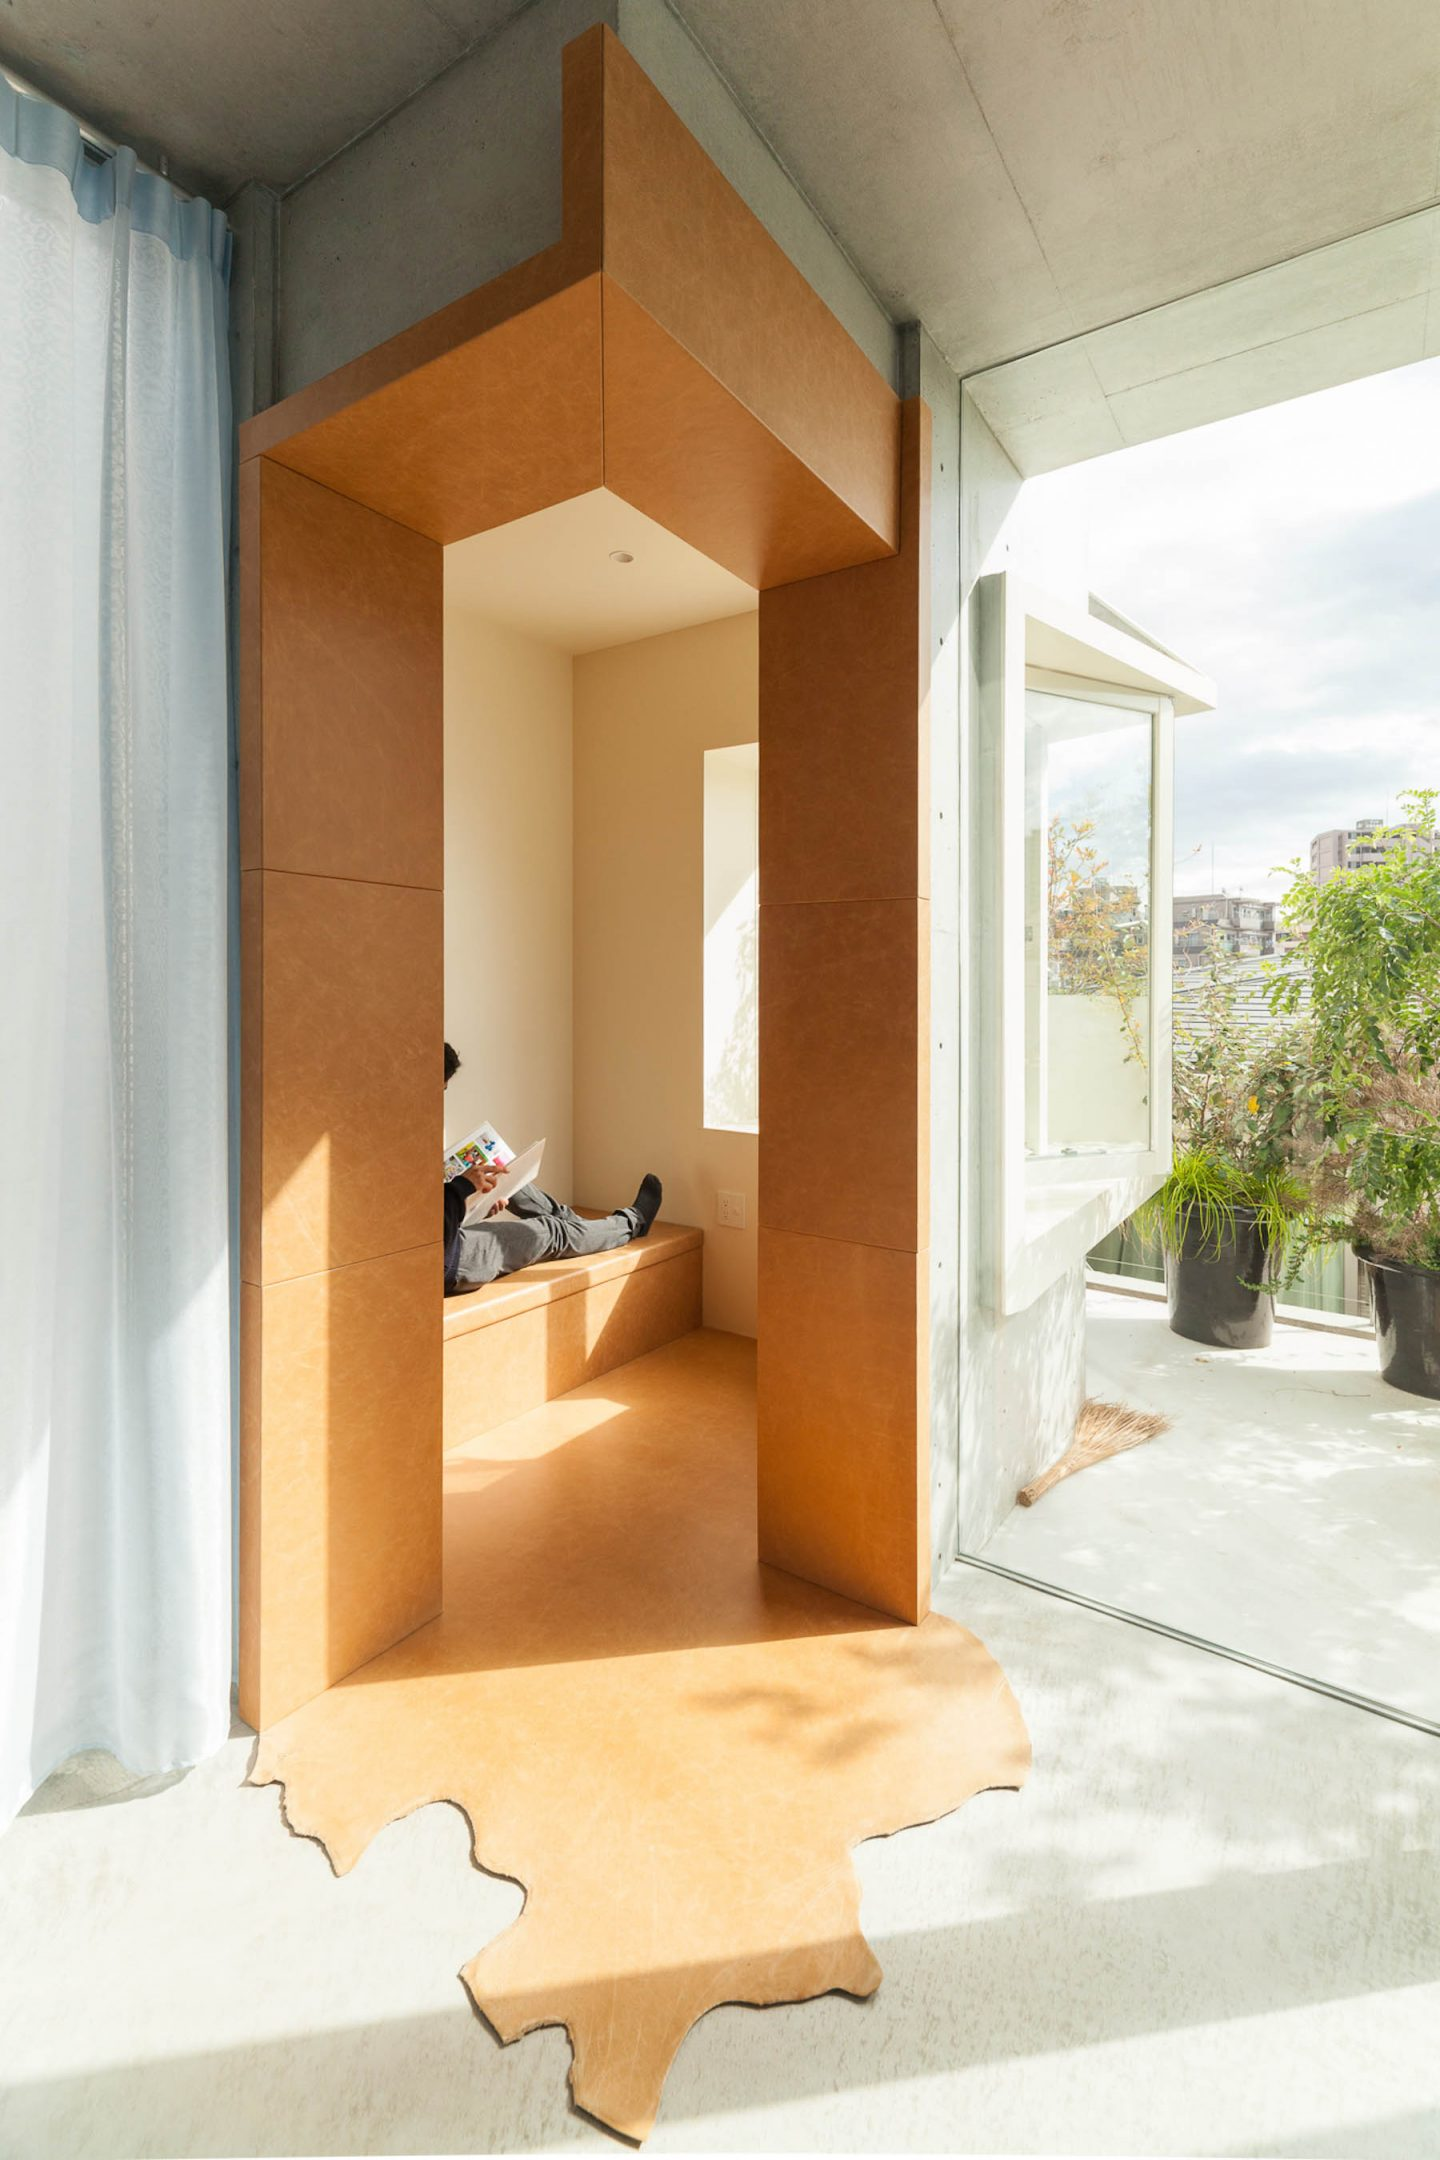 iGNANT-Architecture-Akihisa-Hirata-Tree-Ness-House-13